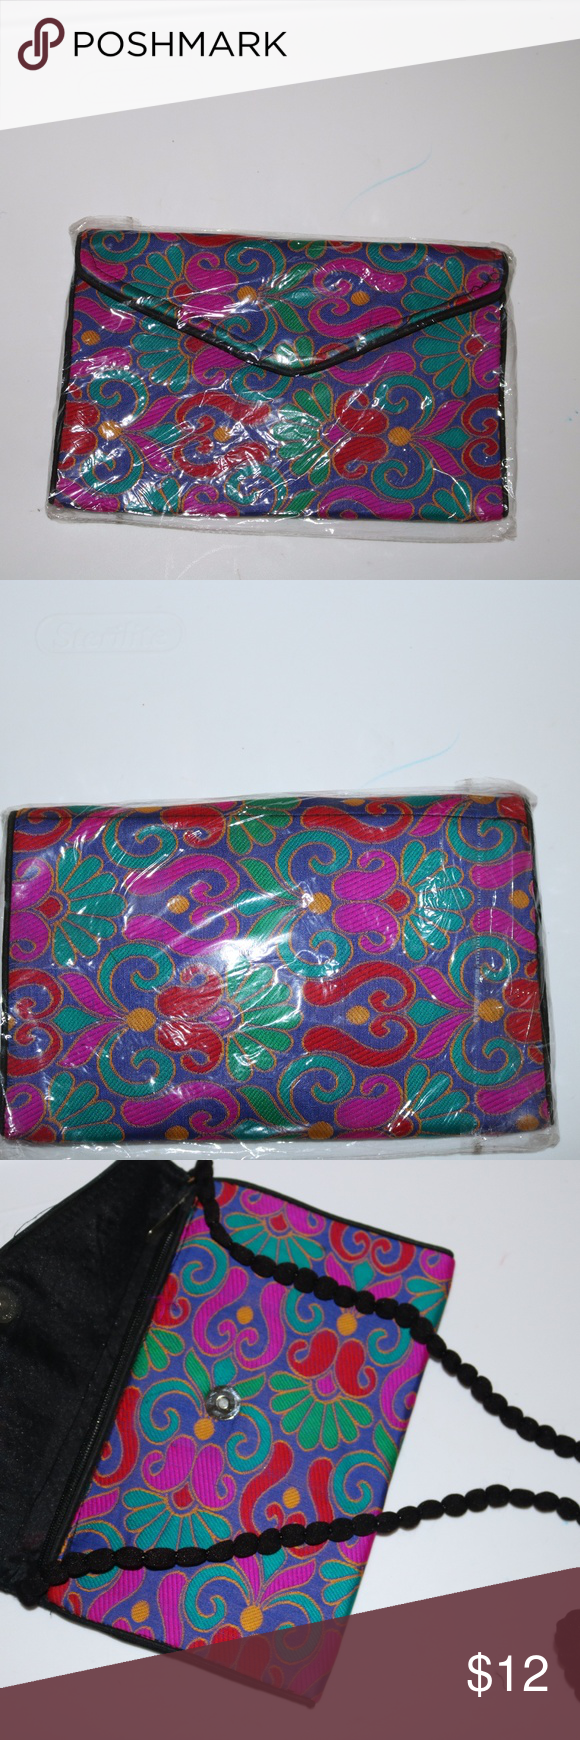 2d98c9ba7a2726 FREE FLORAL CLUTCH   PURSE WITH ANY PURCHASE ITEM IS A BRAND NEW FLORAL  CLUTCH  PURSE WITH ROPED SHOULDER STRAPS UNBRANDED Bags Clutches   Wristlets